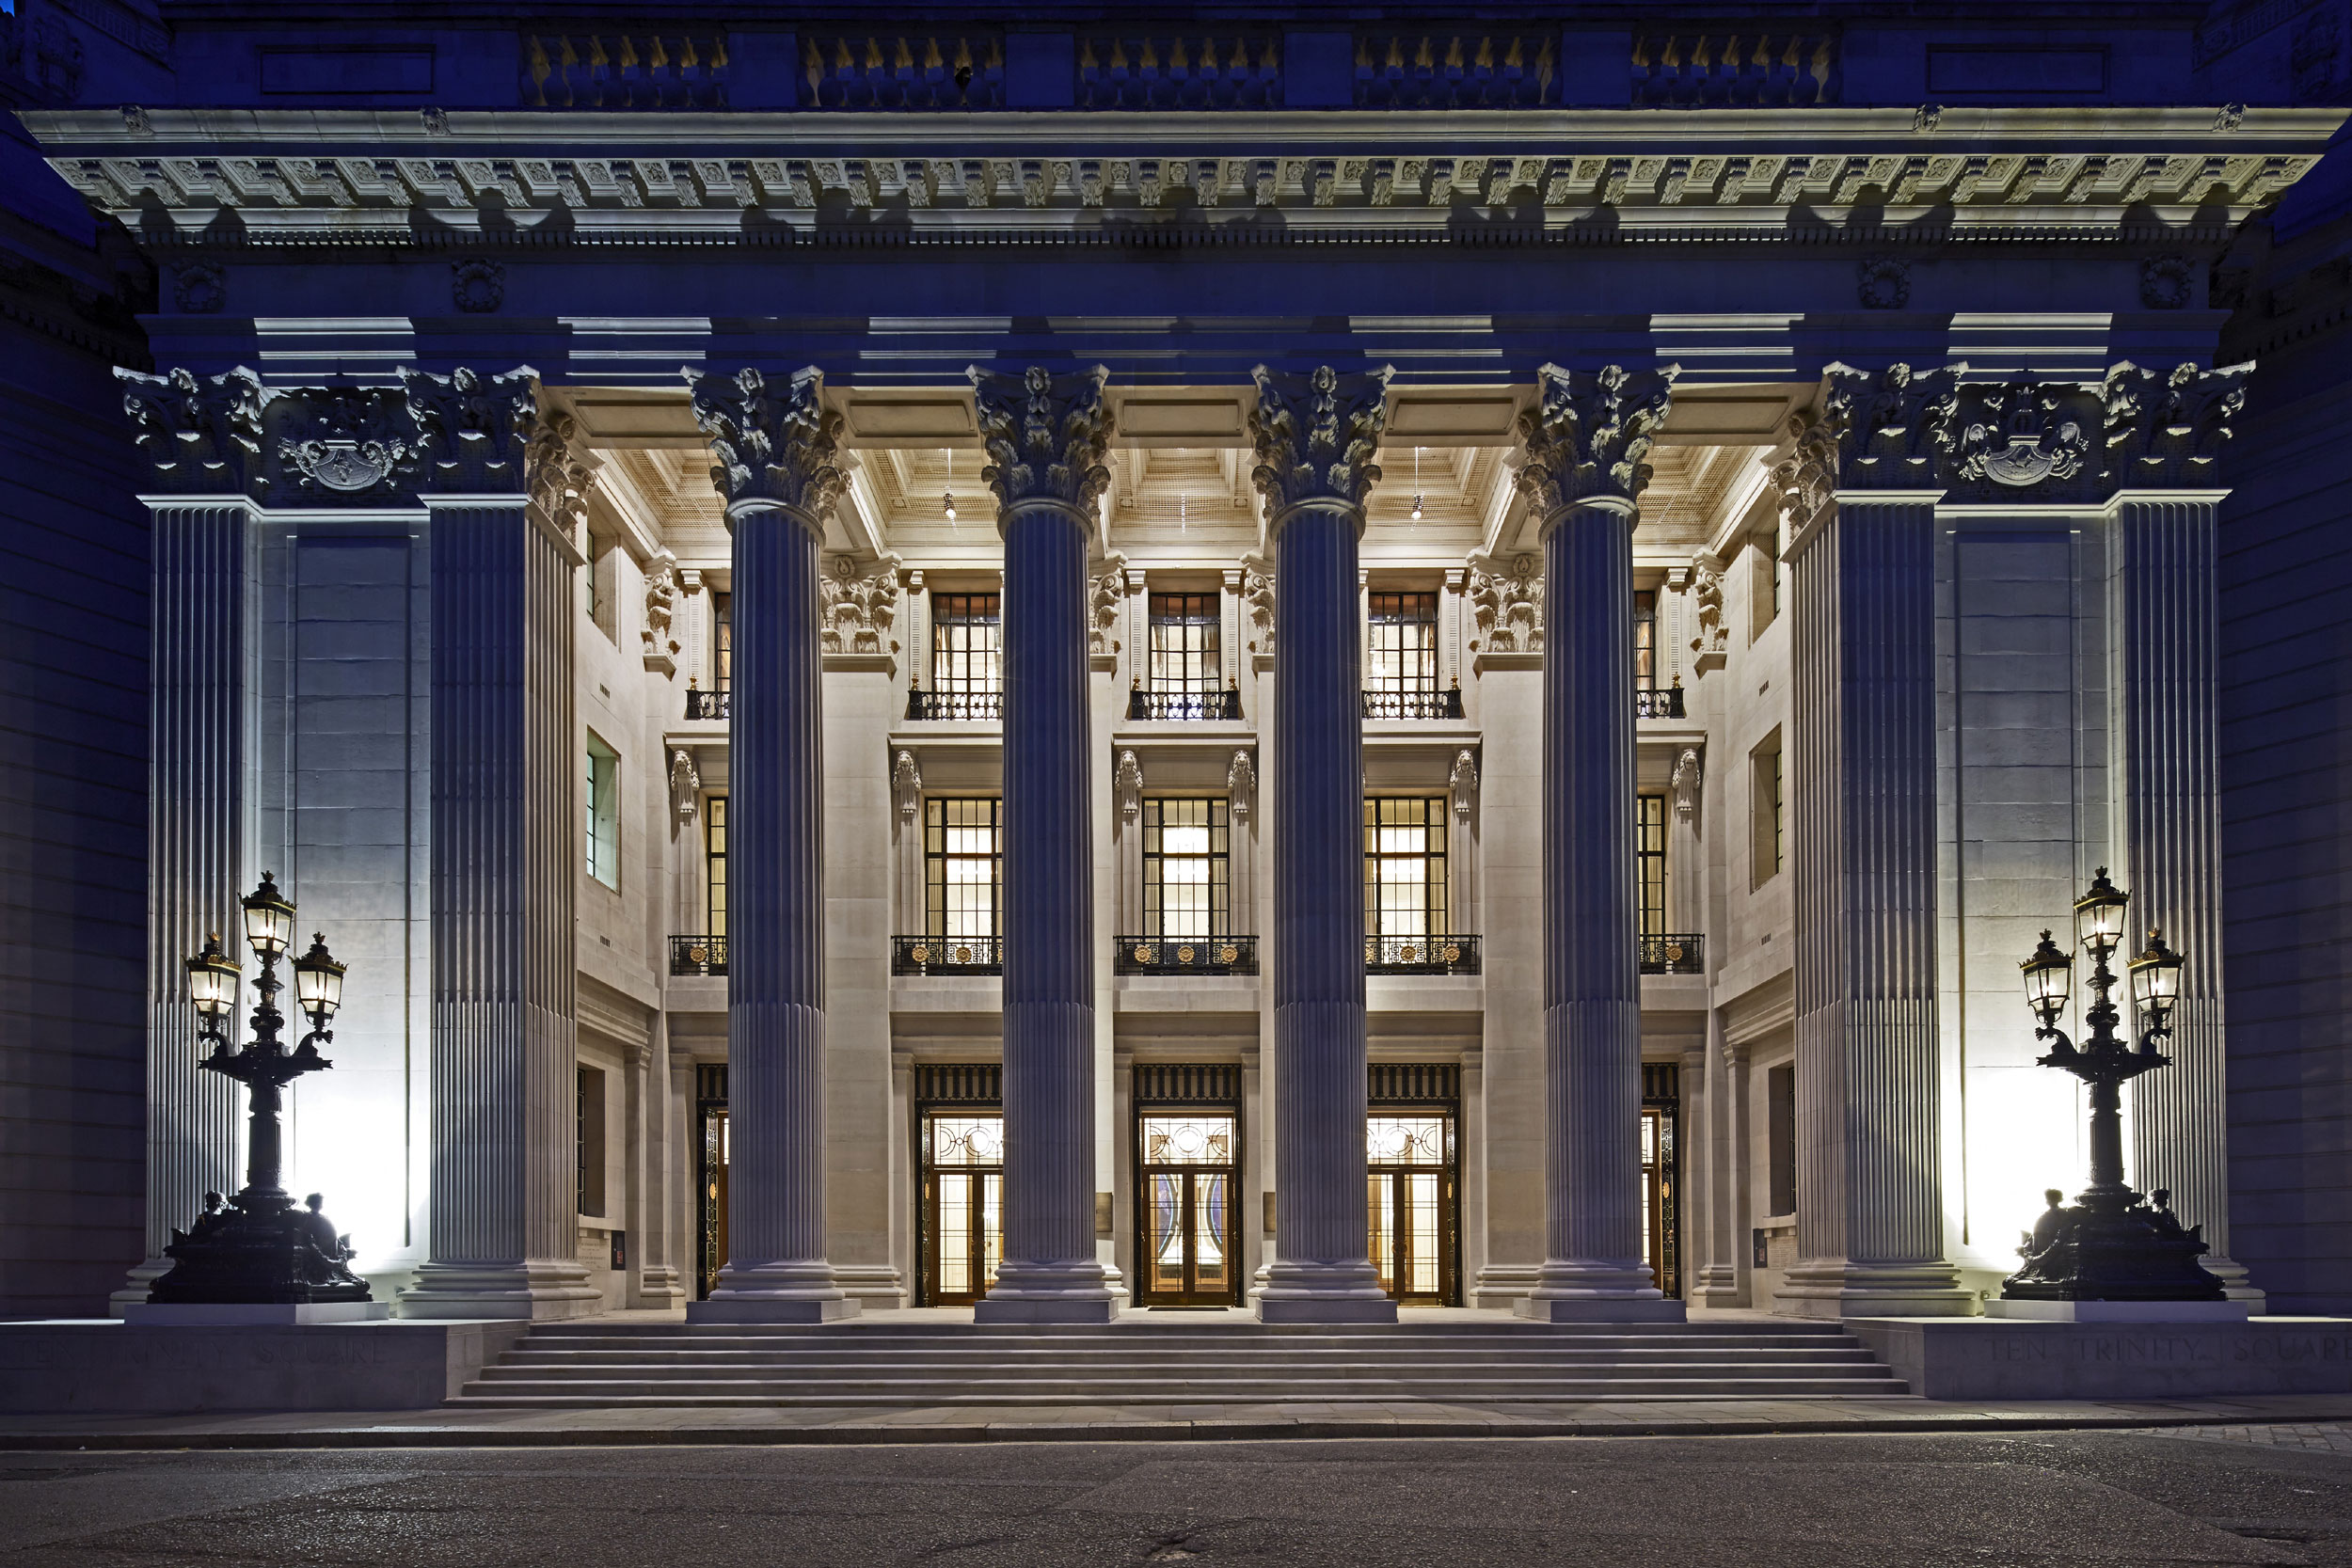 Under the expert development of Reignwood Group, London's iconic Ten Trinity Square has been recreated as an exclusive and harmonious arrangement of 41 residences, a 100-room hotel, and a private members club.